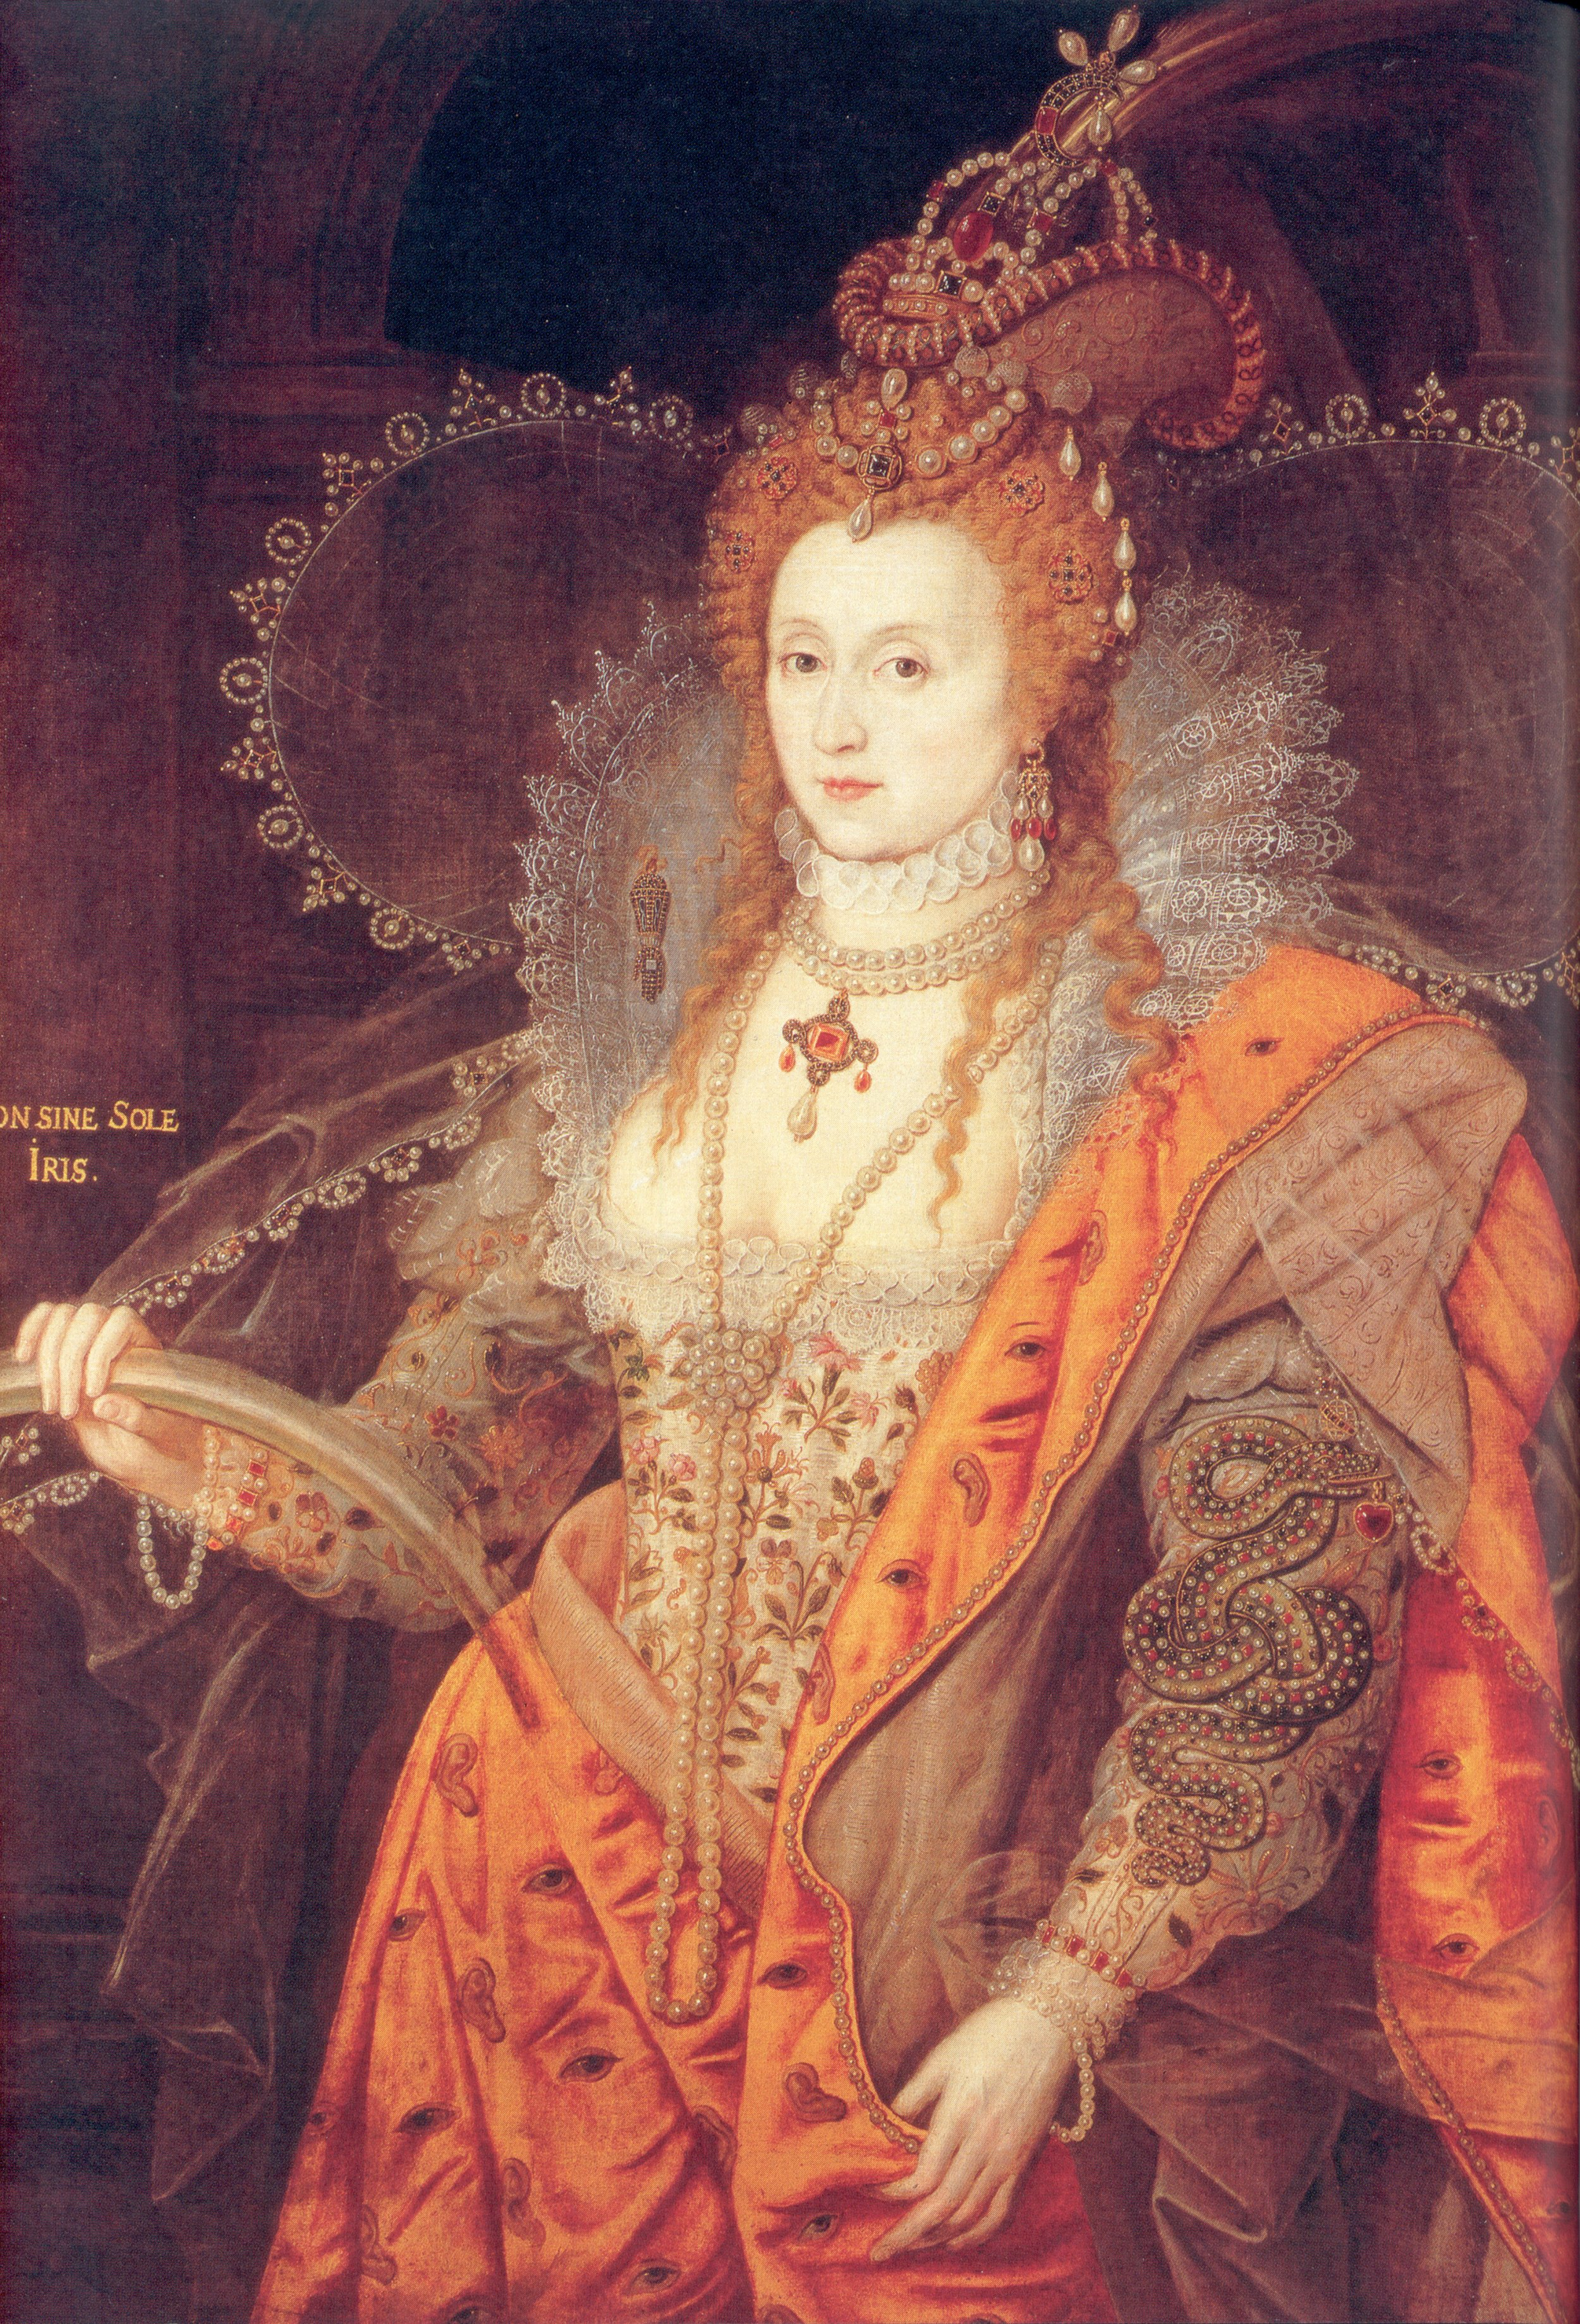 The Rainbow Portrait of Queen Elizabeth I, circa 1600-1602. Photo of portrait by Marilee Mongello courtesy Wikimedia Commons.